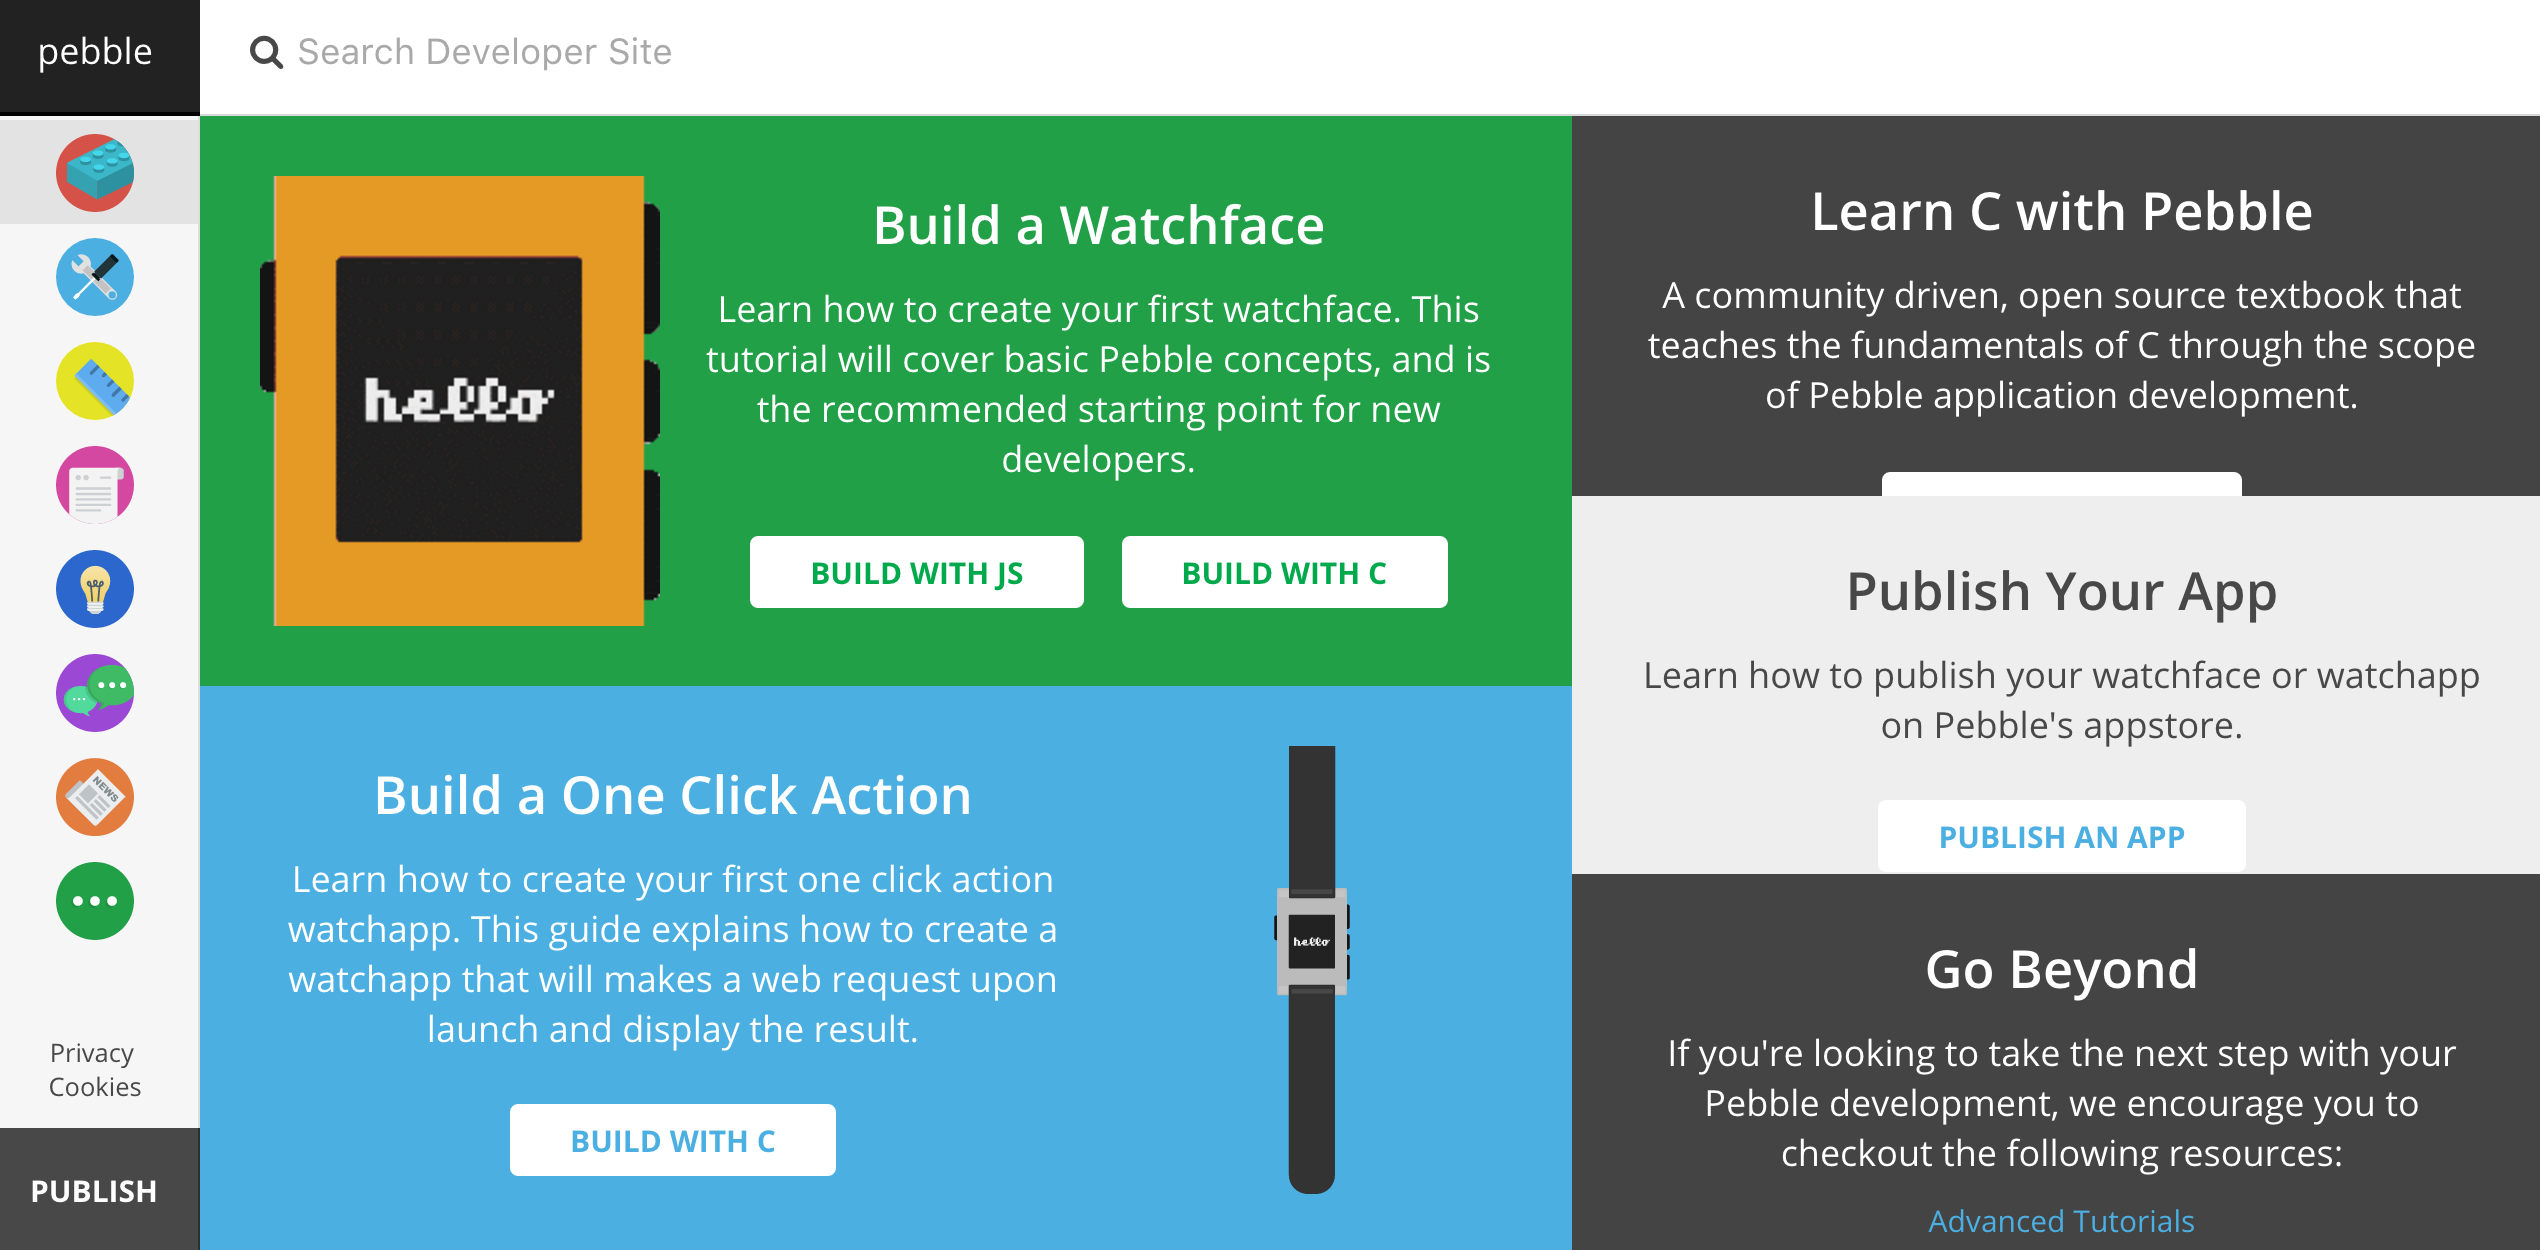 Pebble developer site